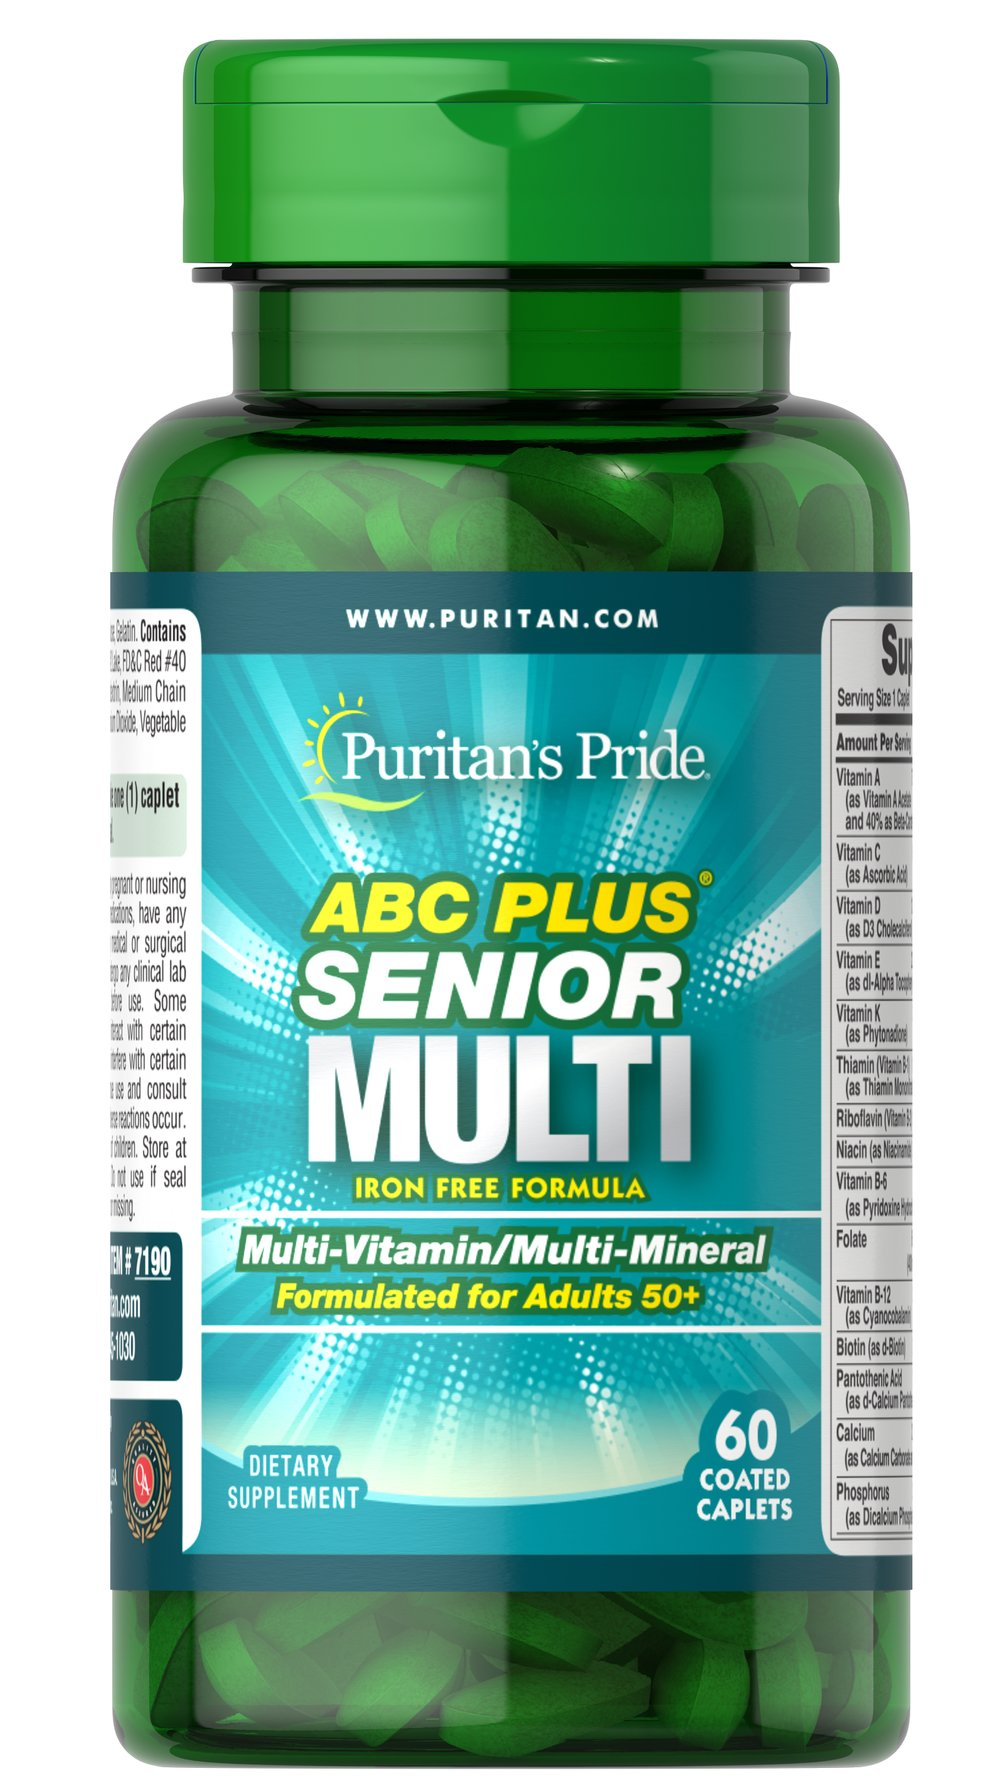 ABC Plus® Senior Multivitamin Multi-Mineral Formula  60 Caplets  $9.99